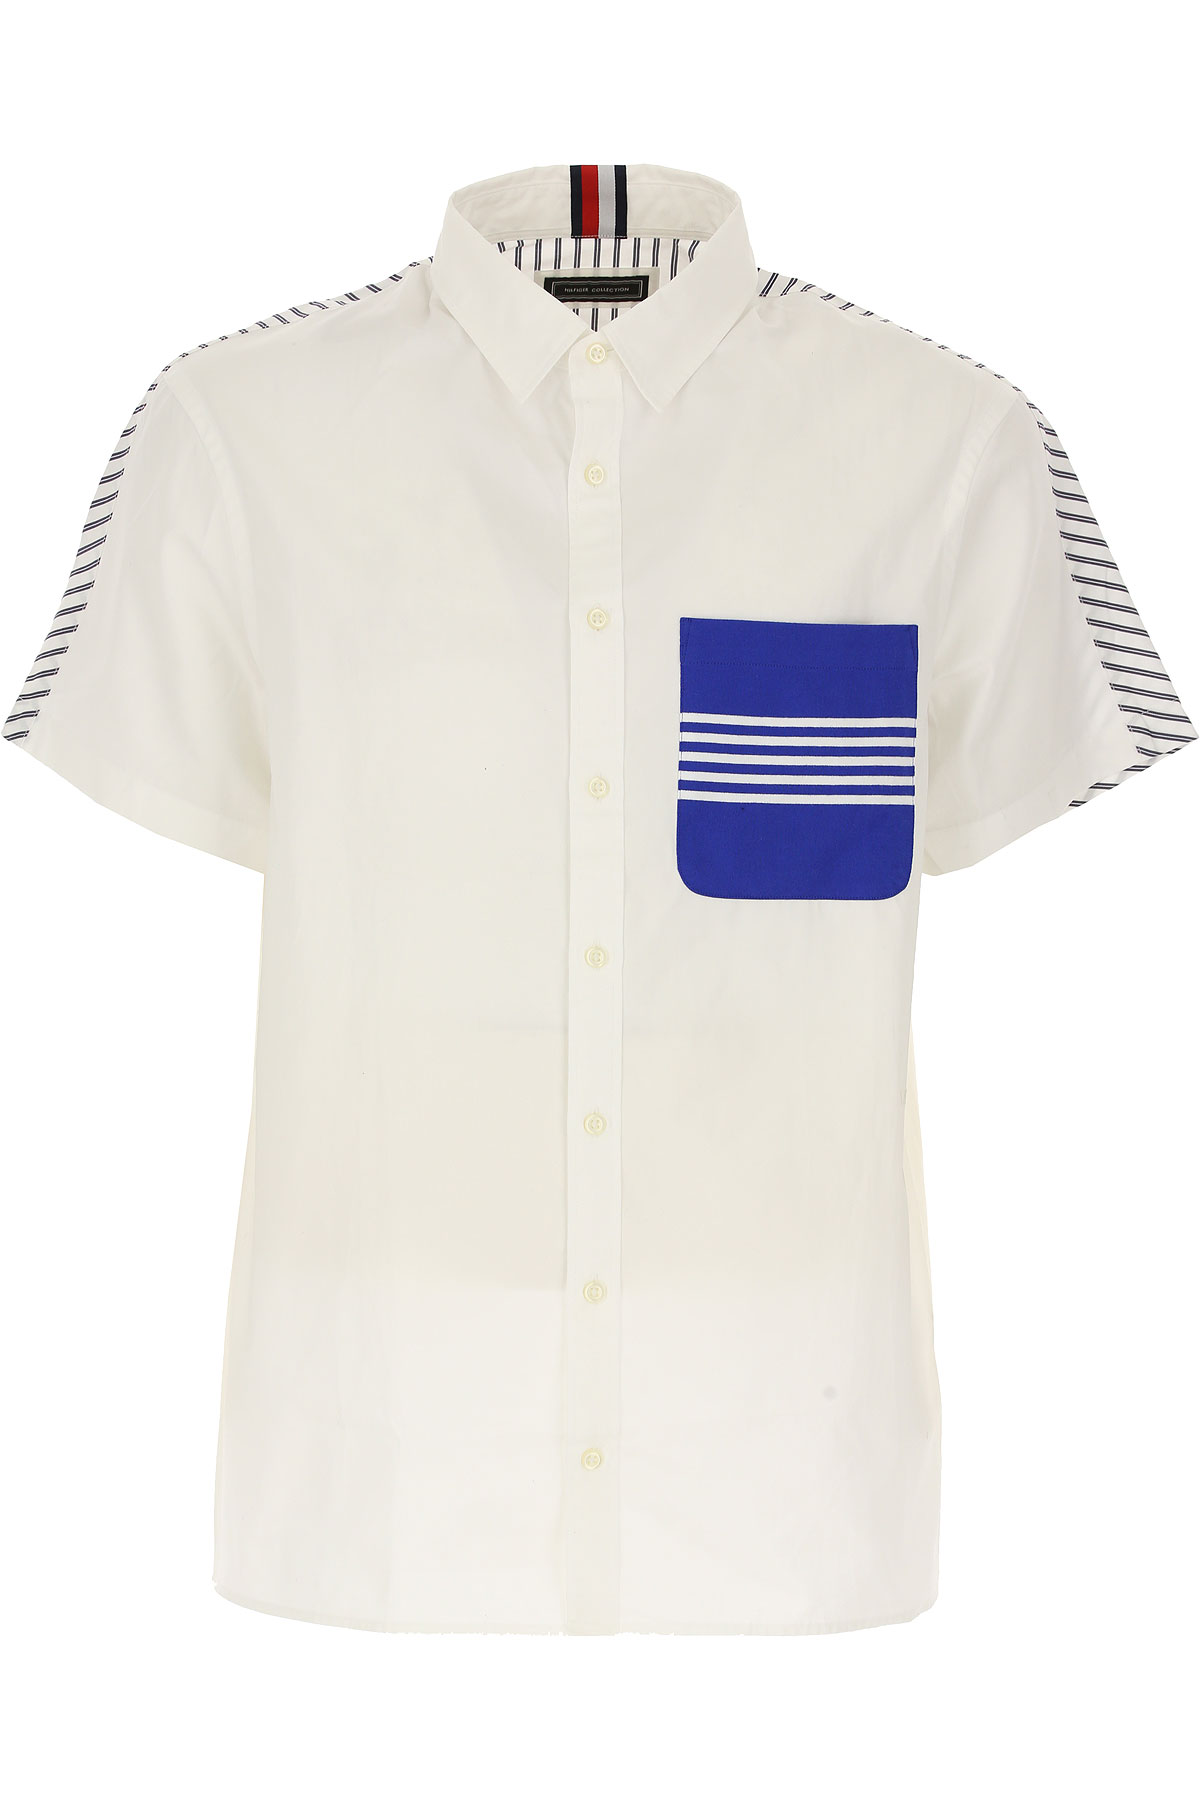 Tommy Hilfiger Mens Clothing On Sale in Outlet, White, Cotton, 2019, S • IT 46 M • IT 48